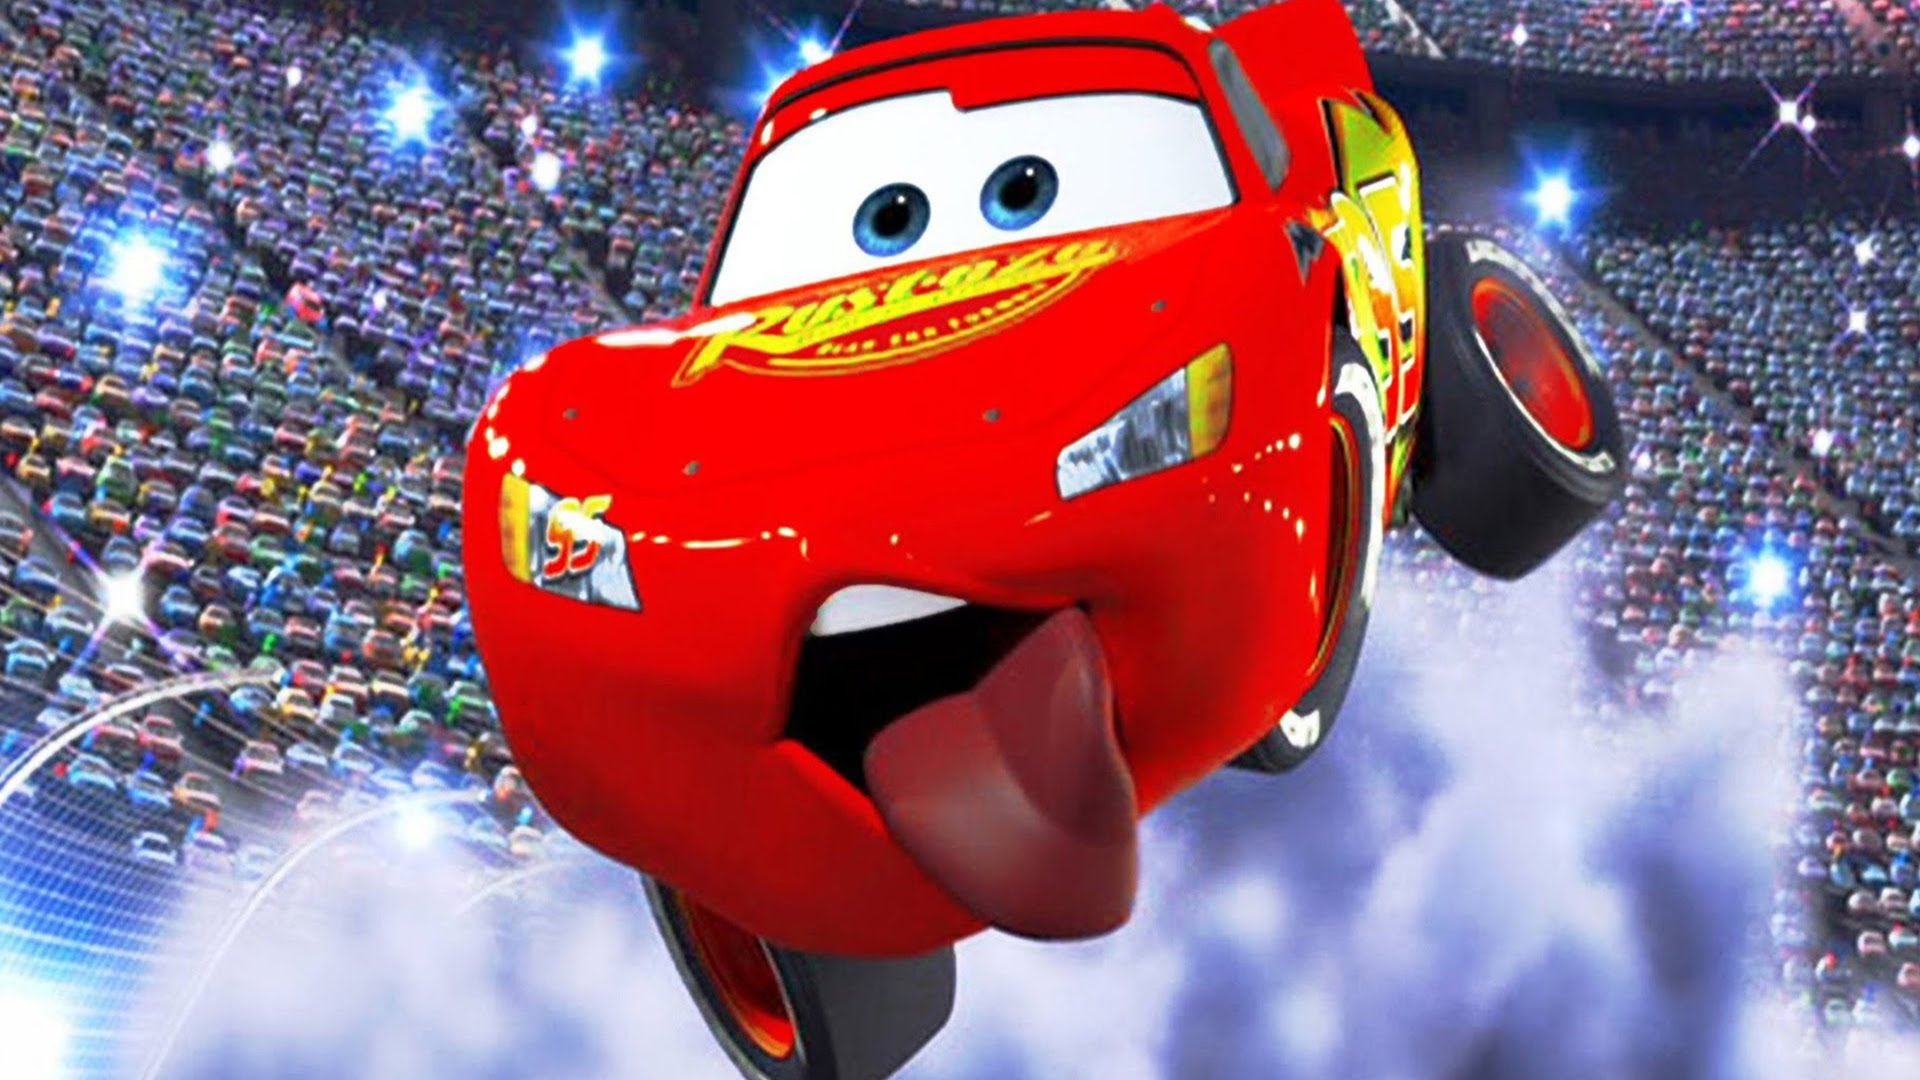 Cars 2 Wallpapers Movie Hq Cars 2 Pictures 4k Wallpapers 2019